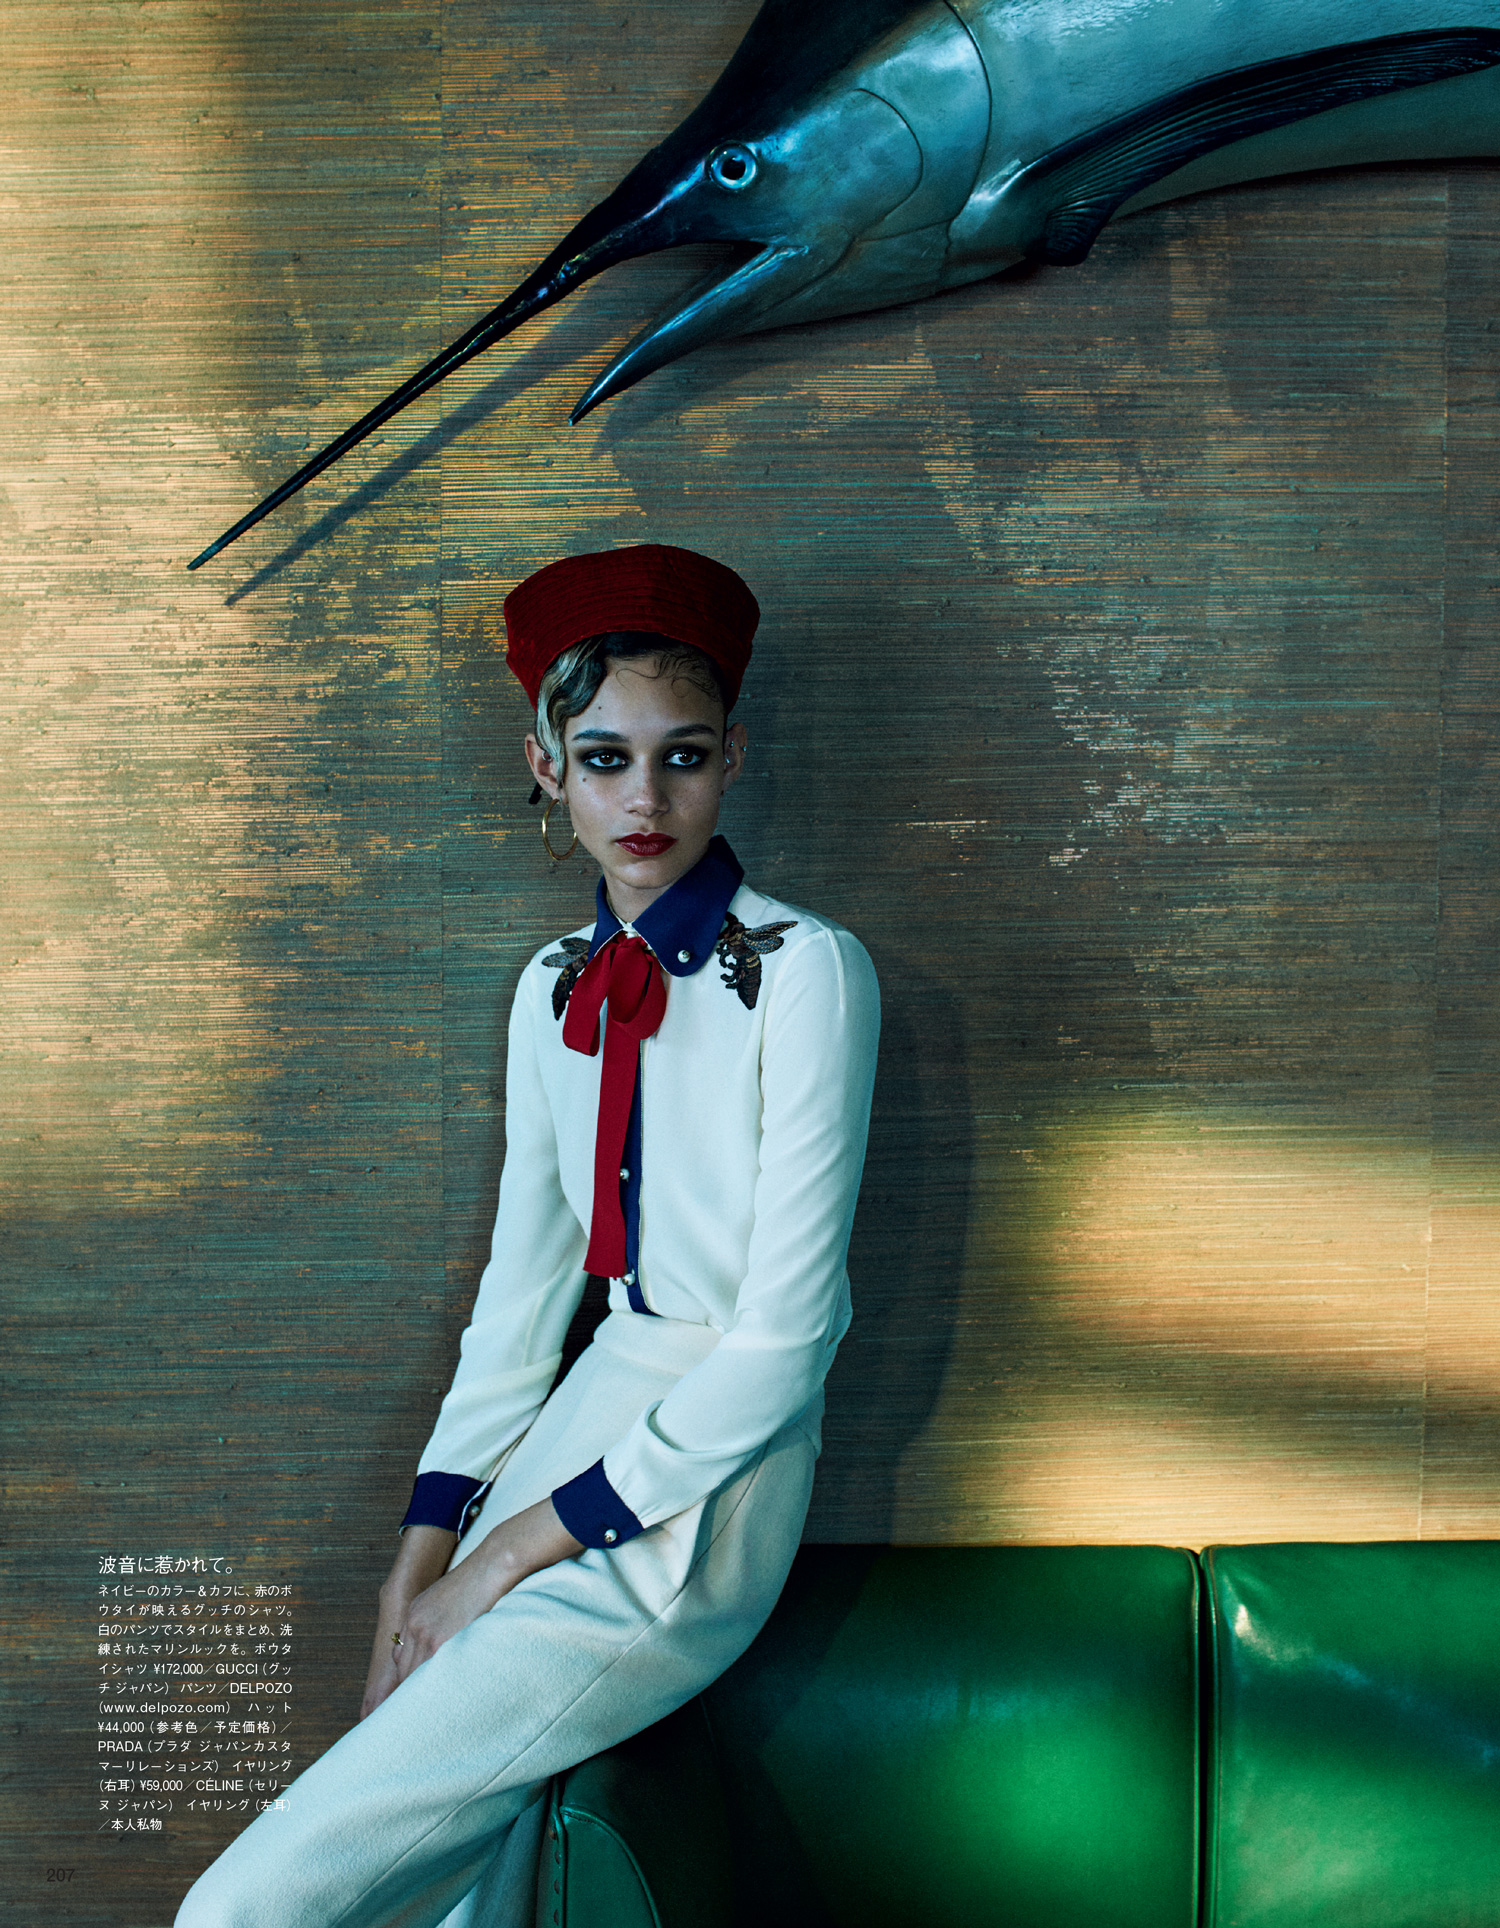 Giovanna-Battaglia-Vogue-Japan-August-2016-The-Sea-Whispers-Emma-Summerton-3.jpg